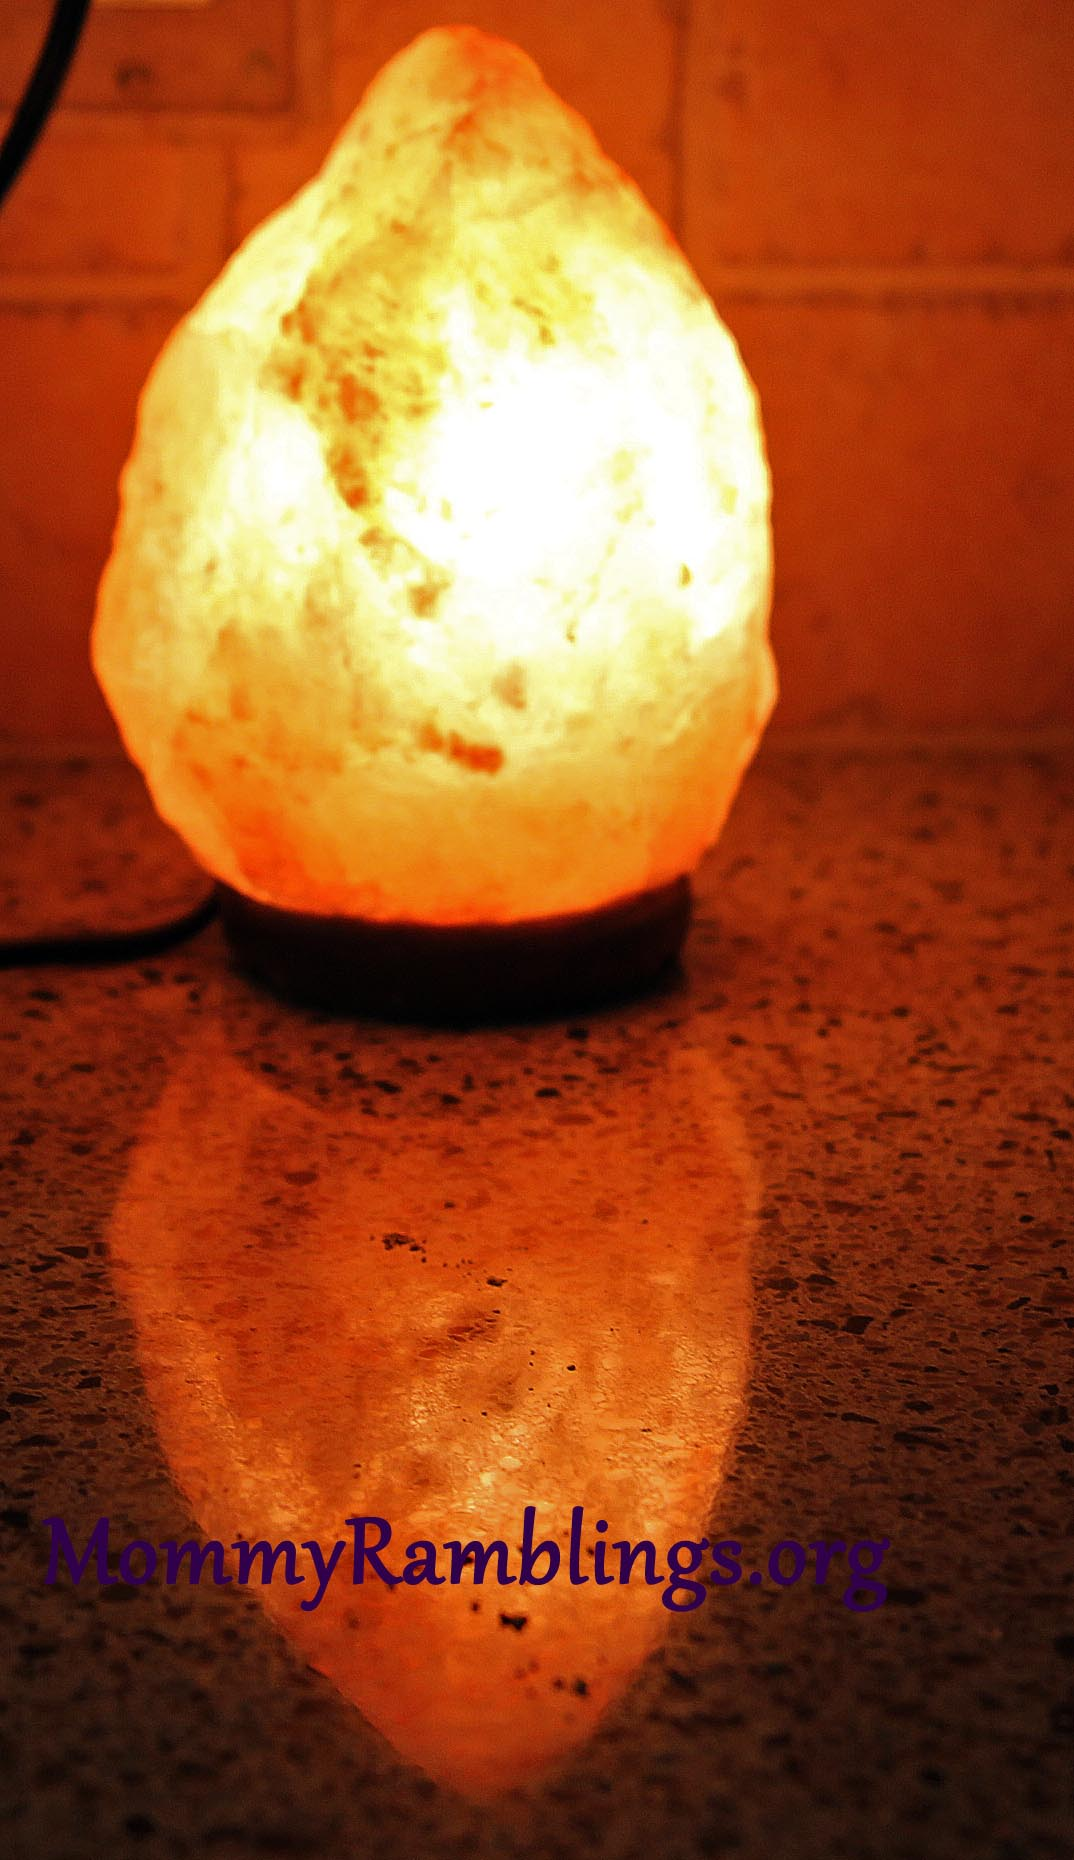 Himalayan Salt Shop, Salt Lamp Review and Giveaway!!! 15% Discount Code Added!!! Mommy Ramblings